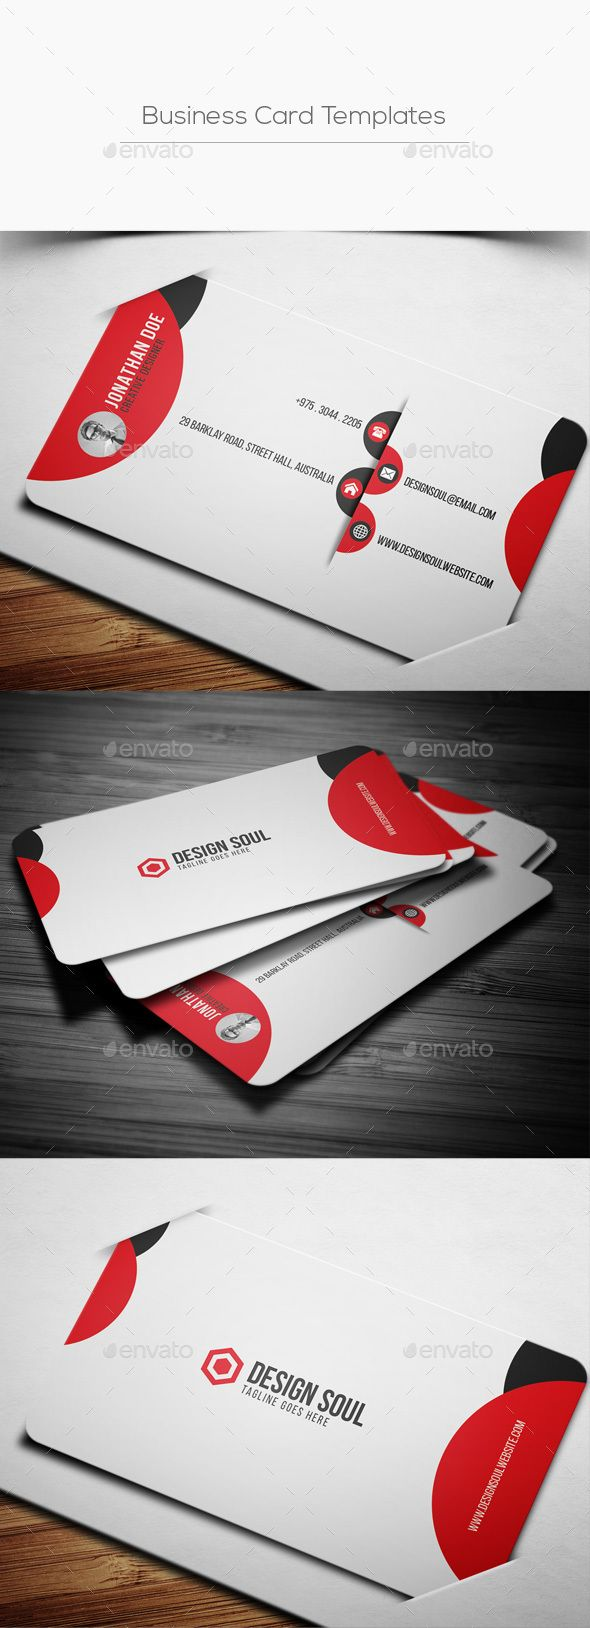 Business card template card templates print templates and card business card template business cards print templates download here https wajeb Gallery